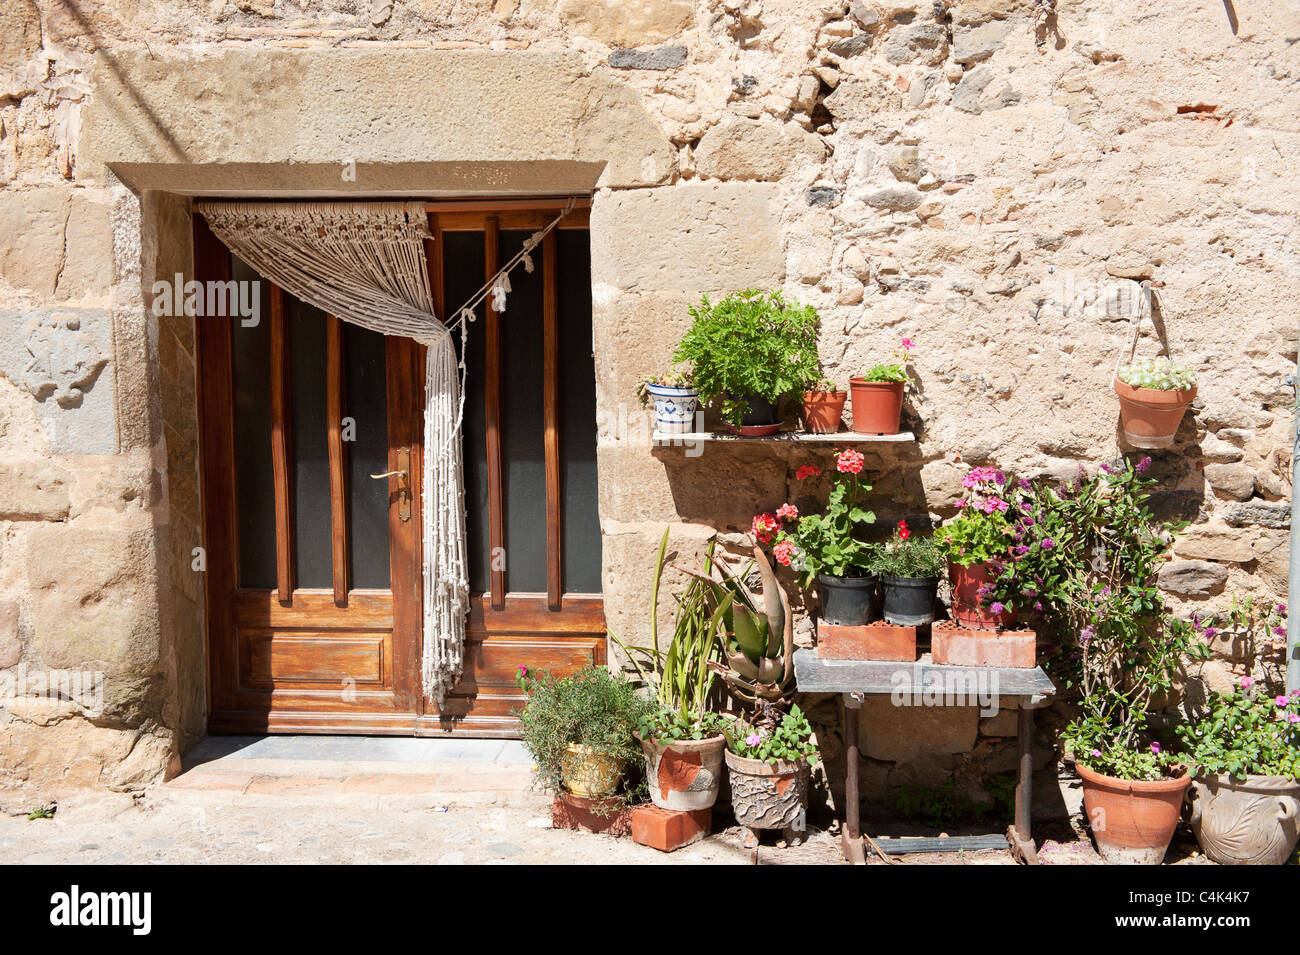 spanish plants stockfotos spanish plants bilder alamy. Black Bedroom Furniture Sets. Home Design Ideas